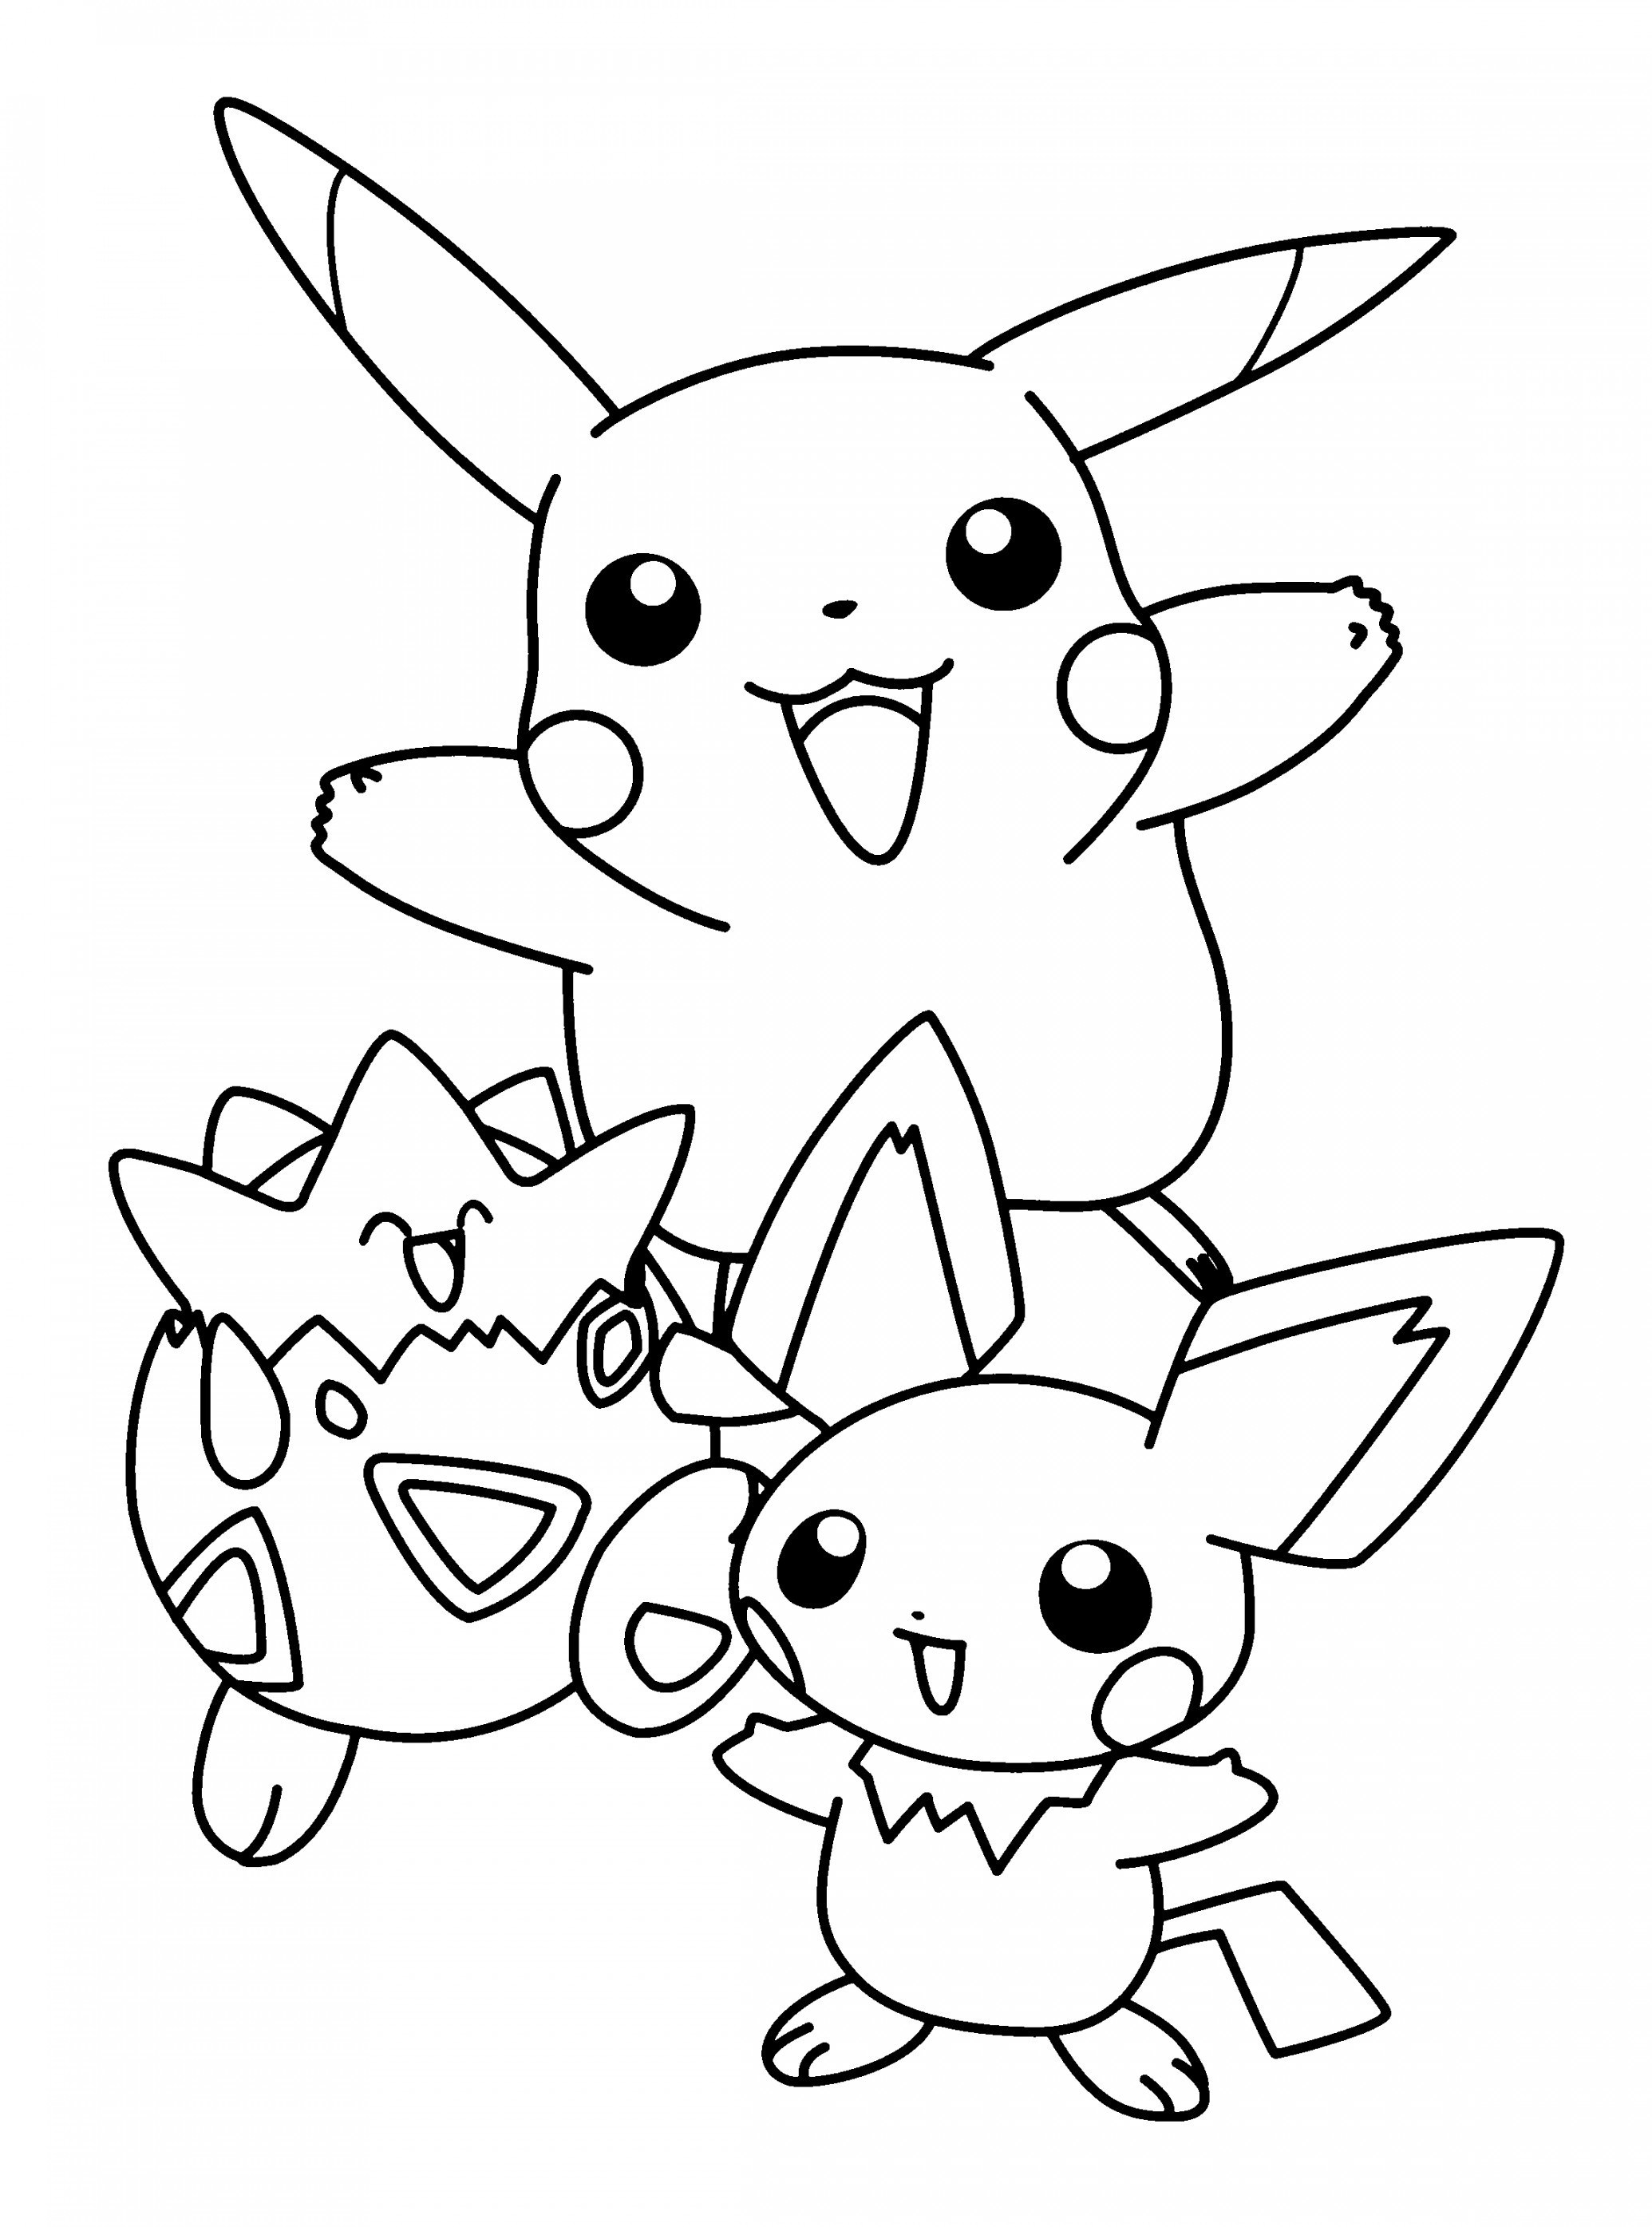 coloring pages of pikachu pikachu coloring pages to download and print for free pikachu pages coloring of